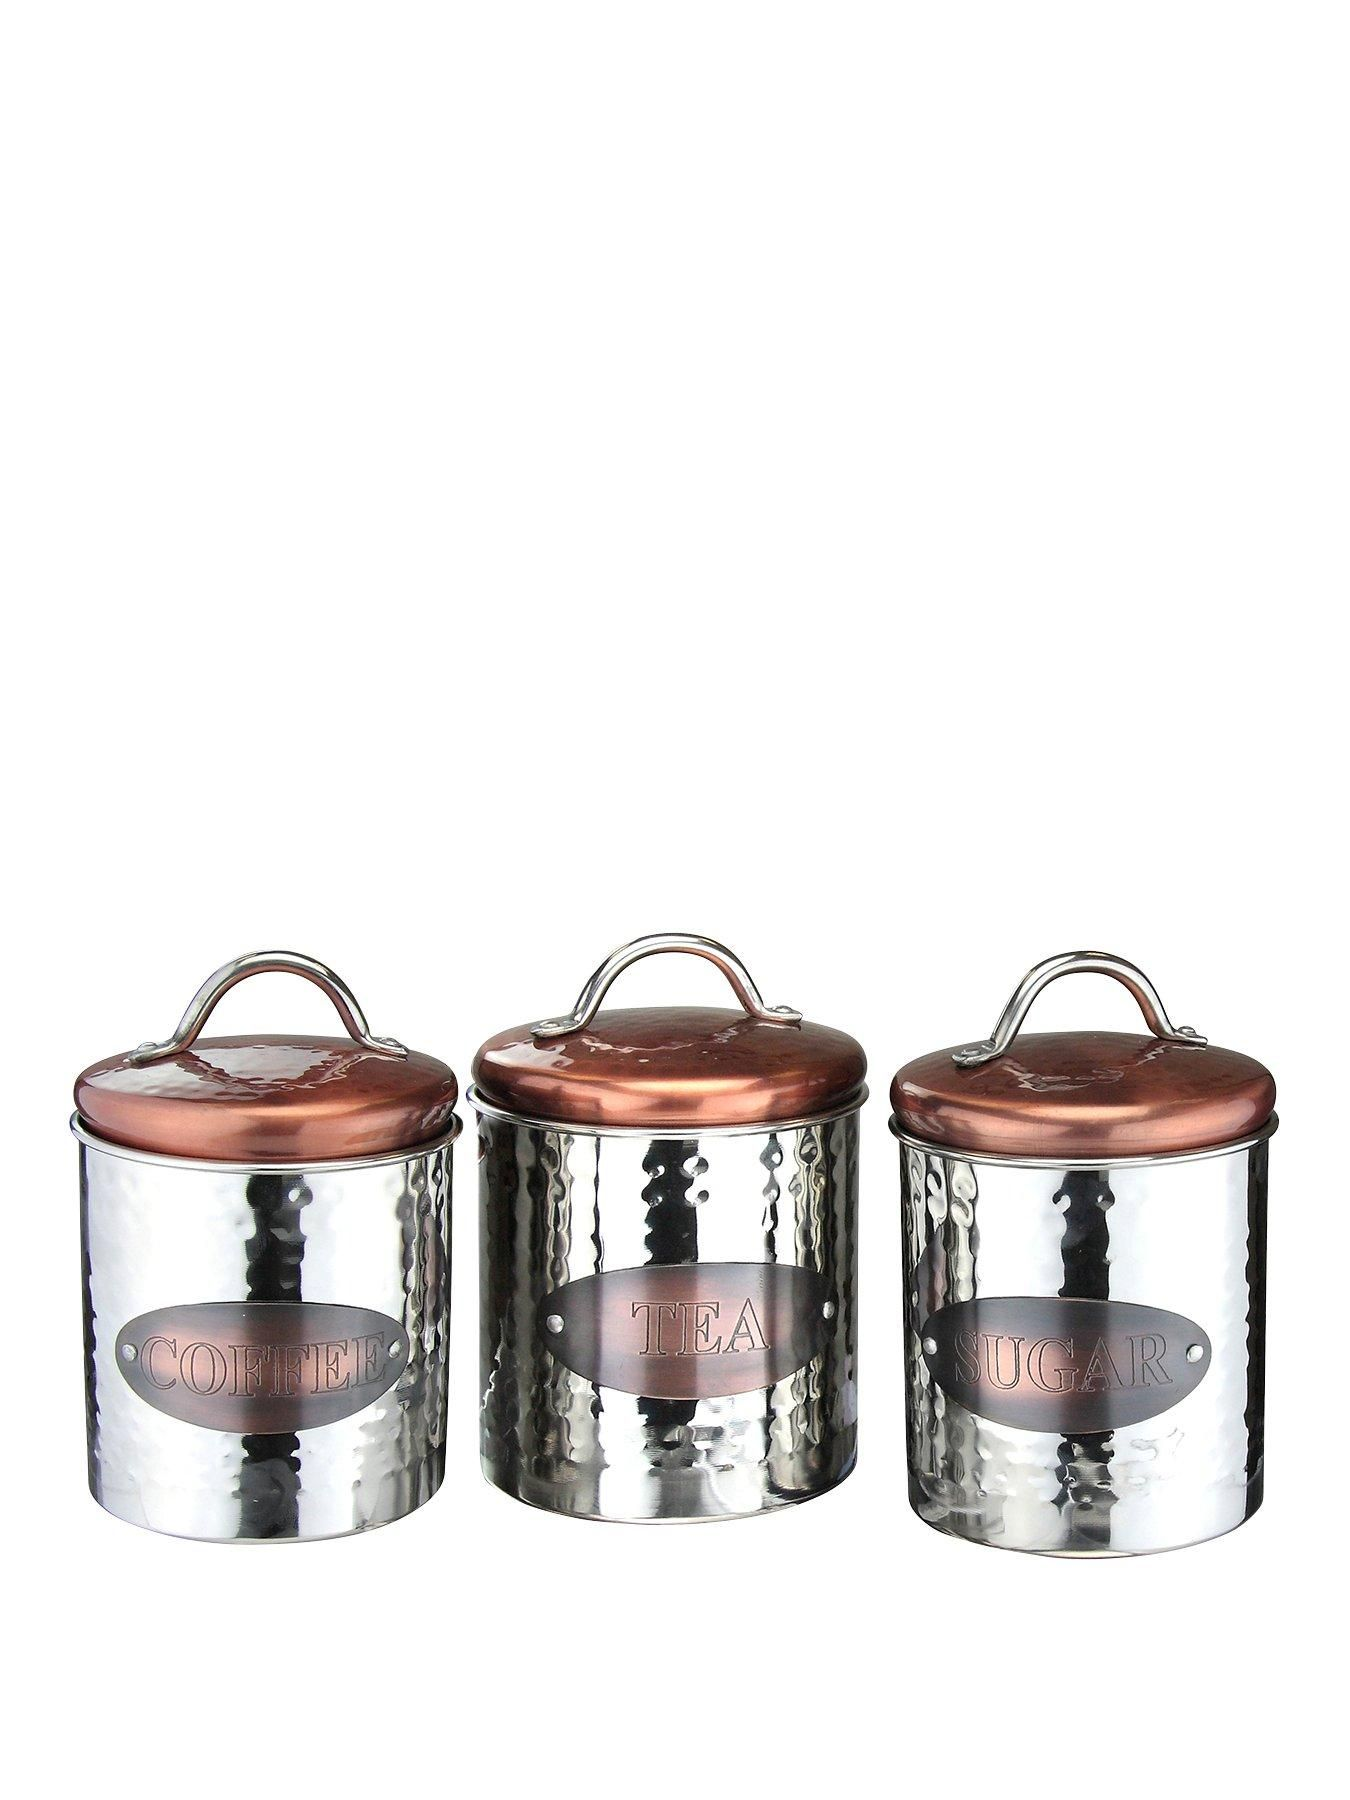 82f02db94b41 the New copper and stainless steel range of kitchen storage is stylish and  functiional. The set of 3 containes a tea,coffee and sugar canister and  they ...